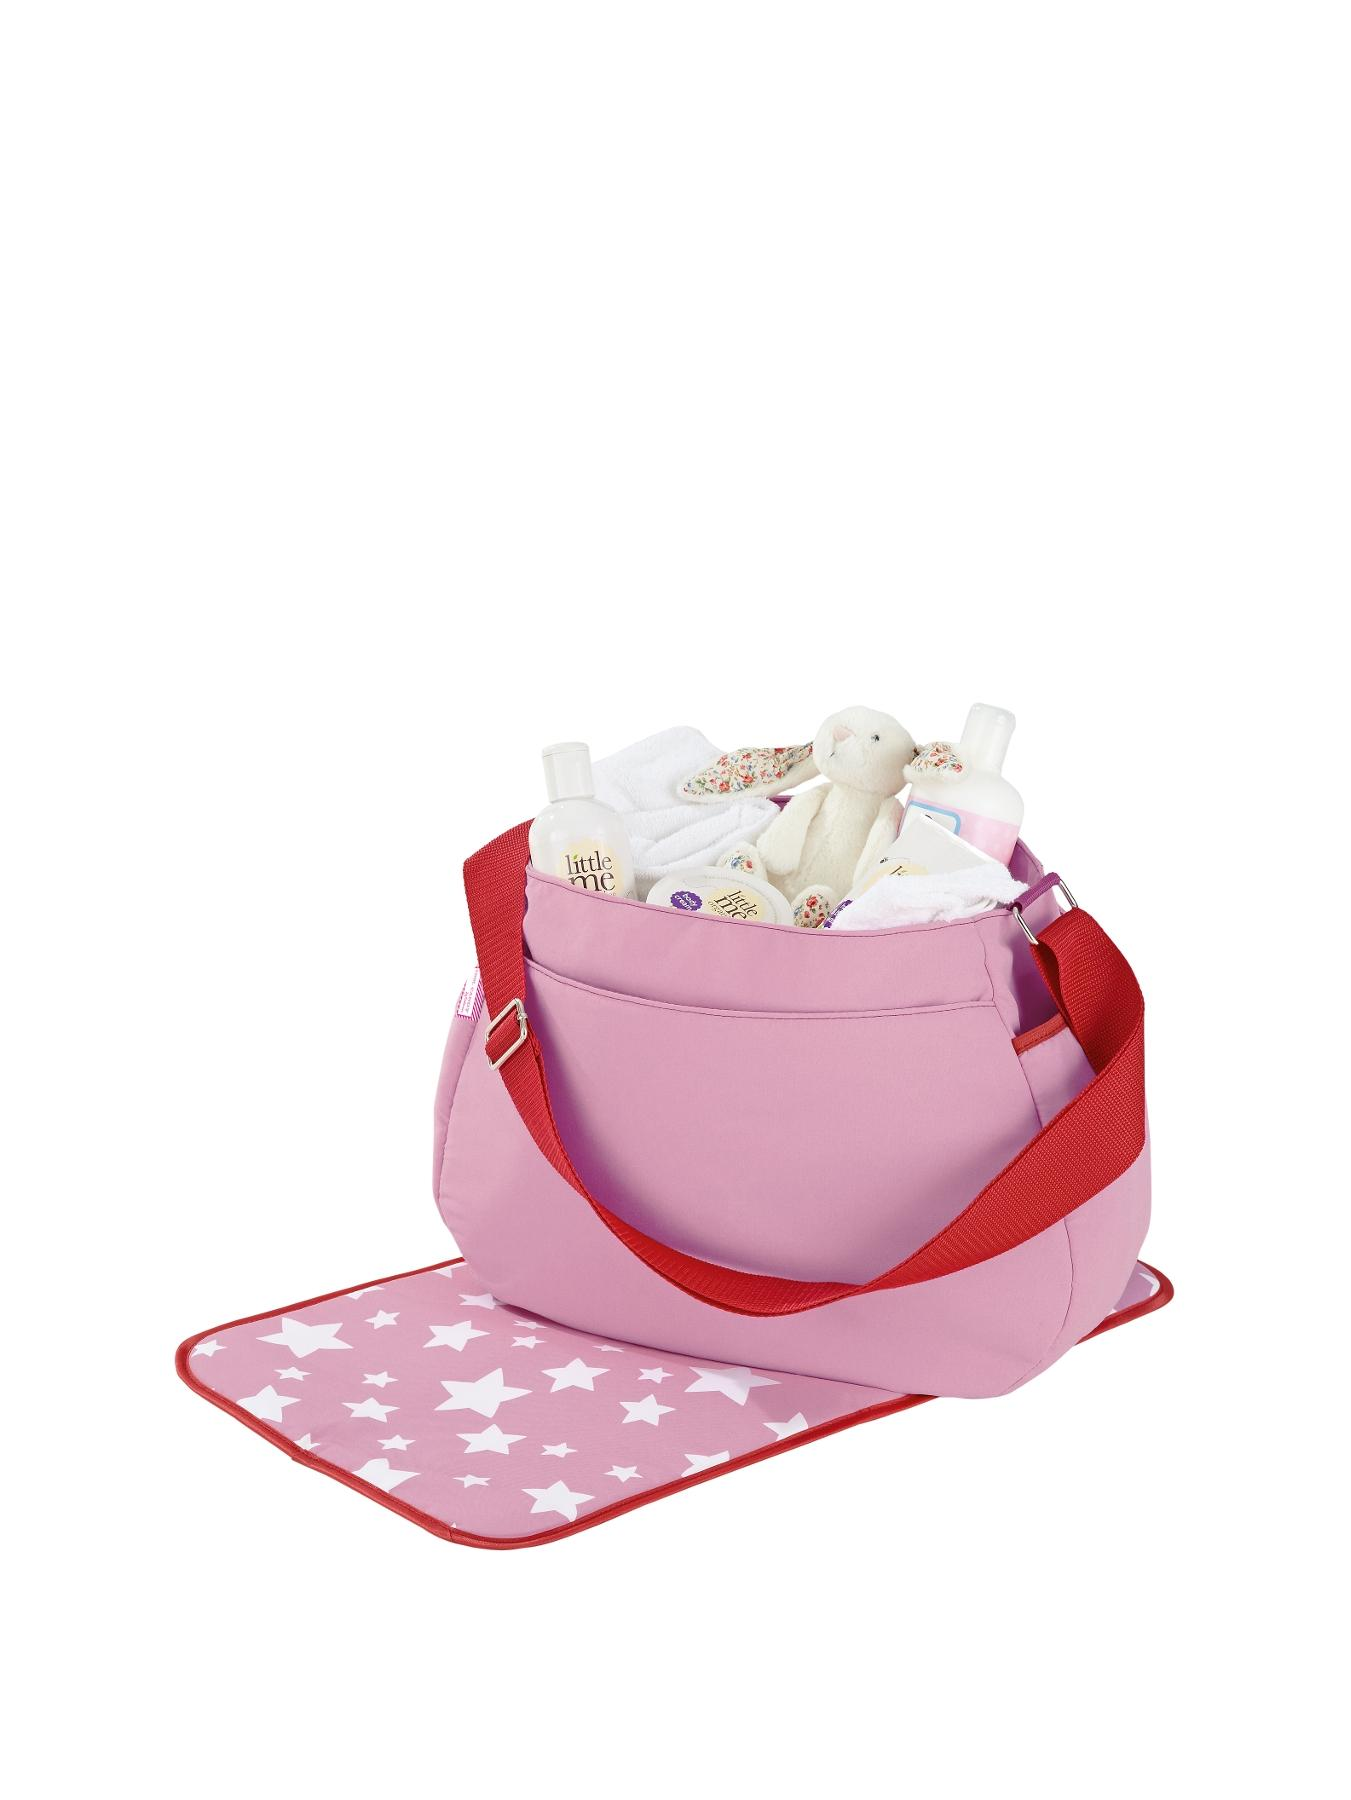 Baby Products Coleen Stars Baby Girls Changing Bag